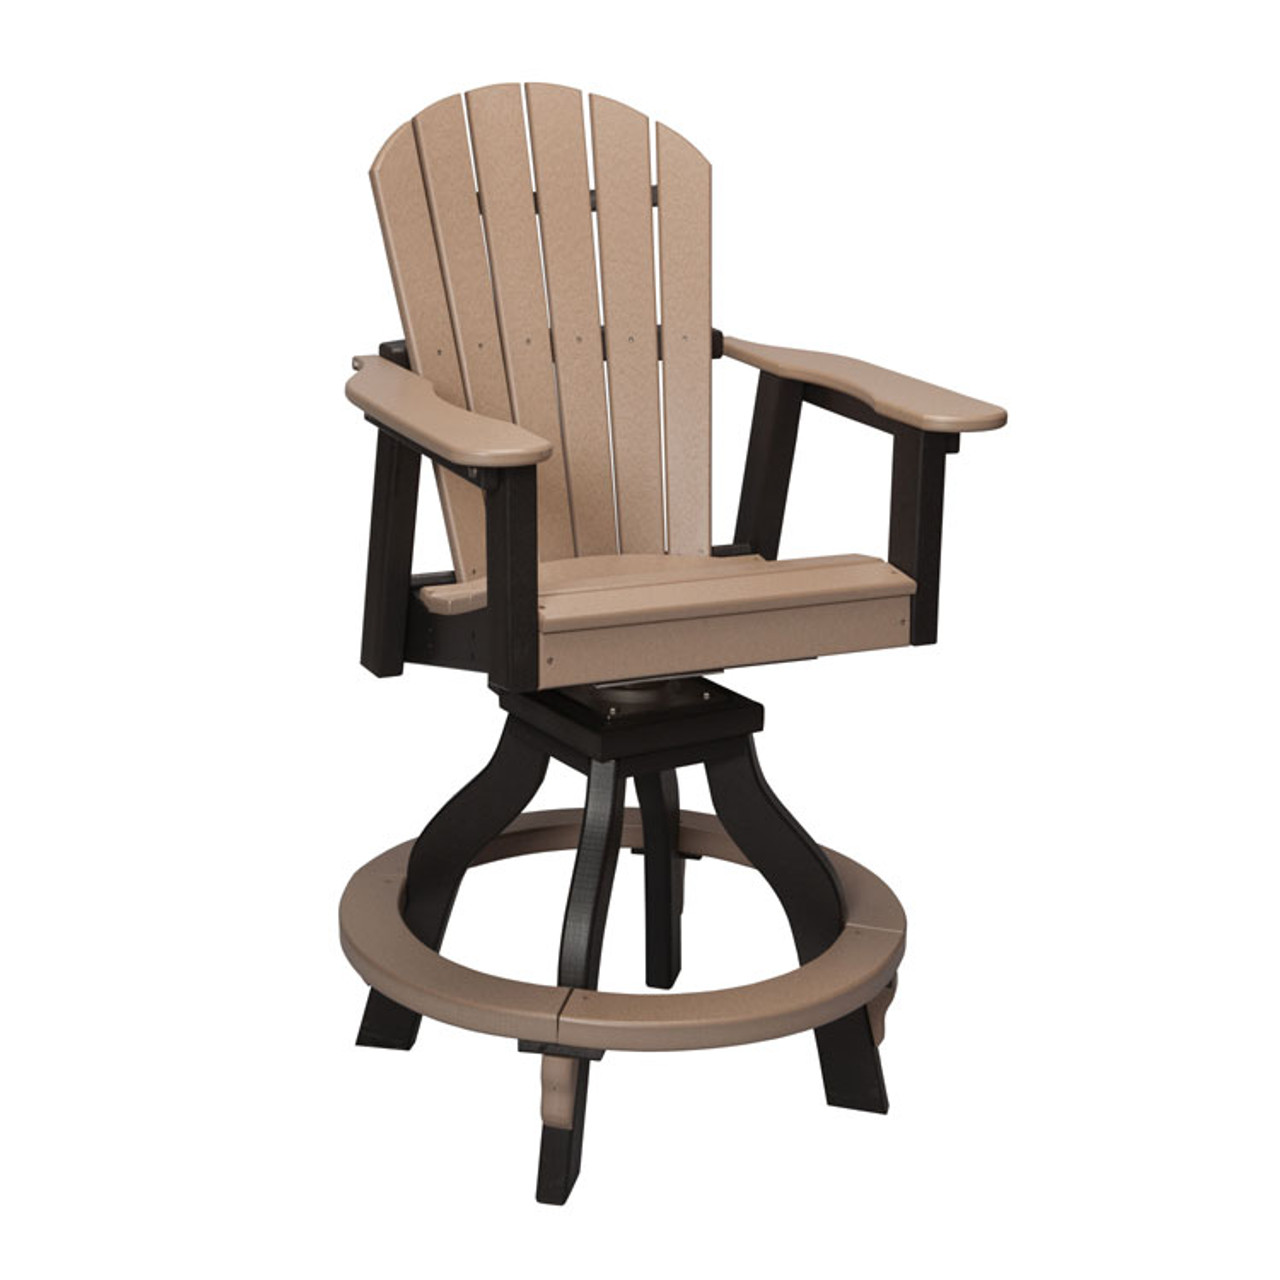 Pleasing Oceanside Outdoor Poly Lumber Swivel Counter Height Stool With Arms Machost Co Dining Chair Design Ideas Machostcouk